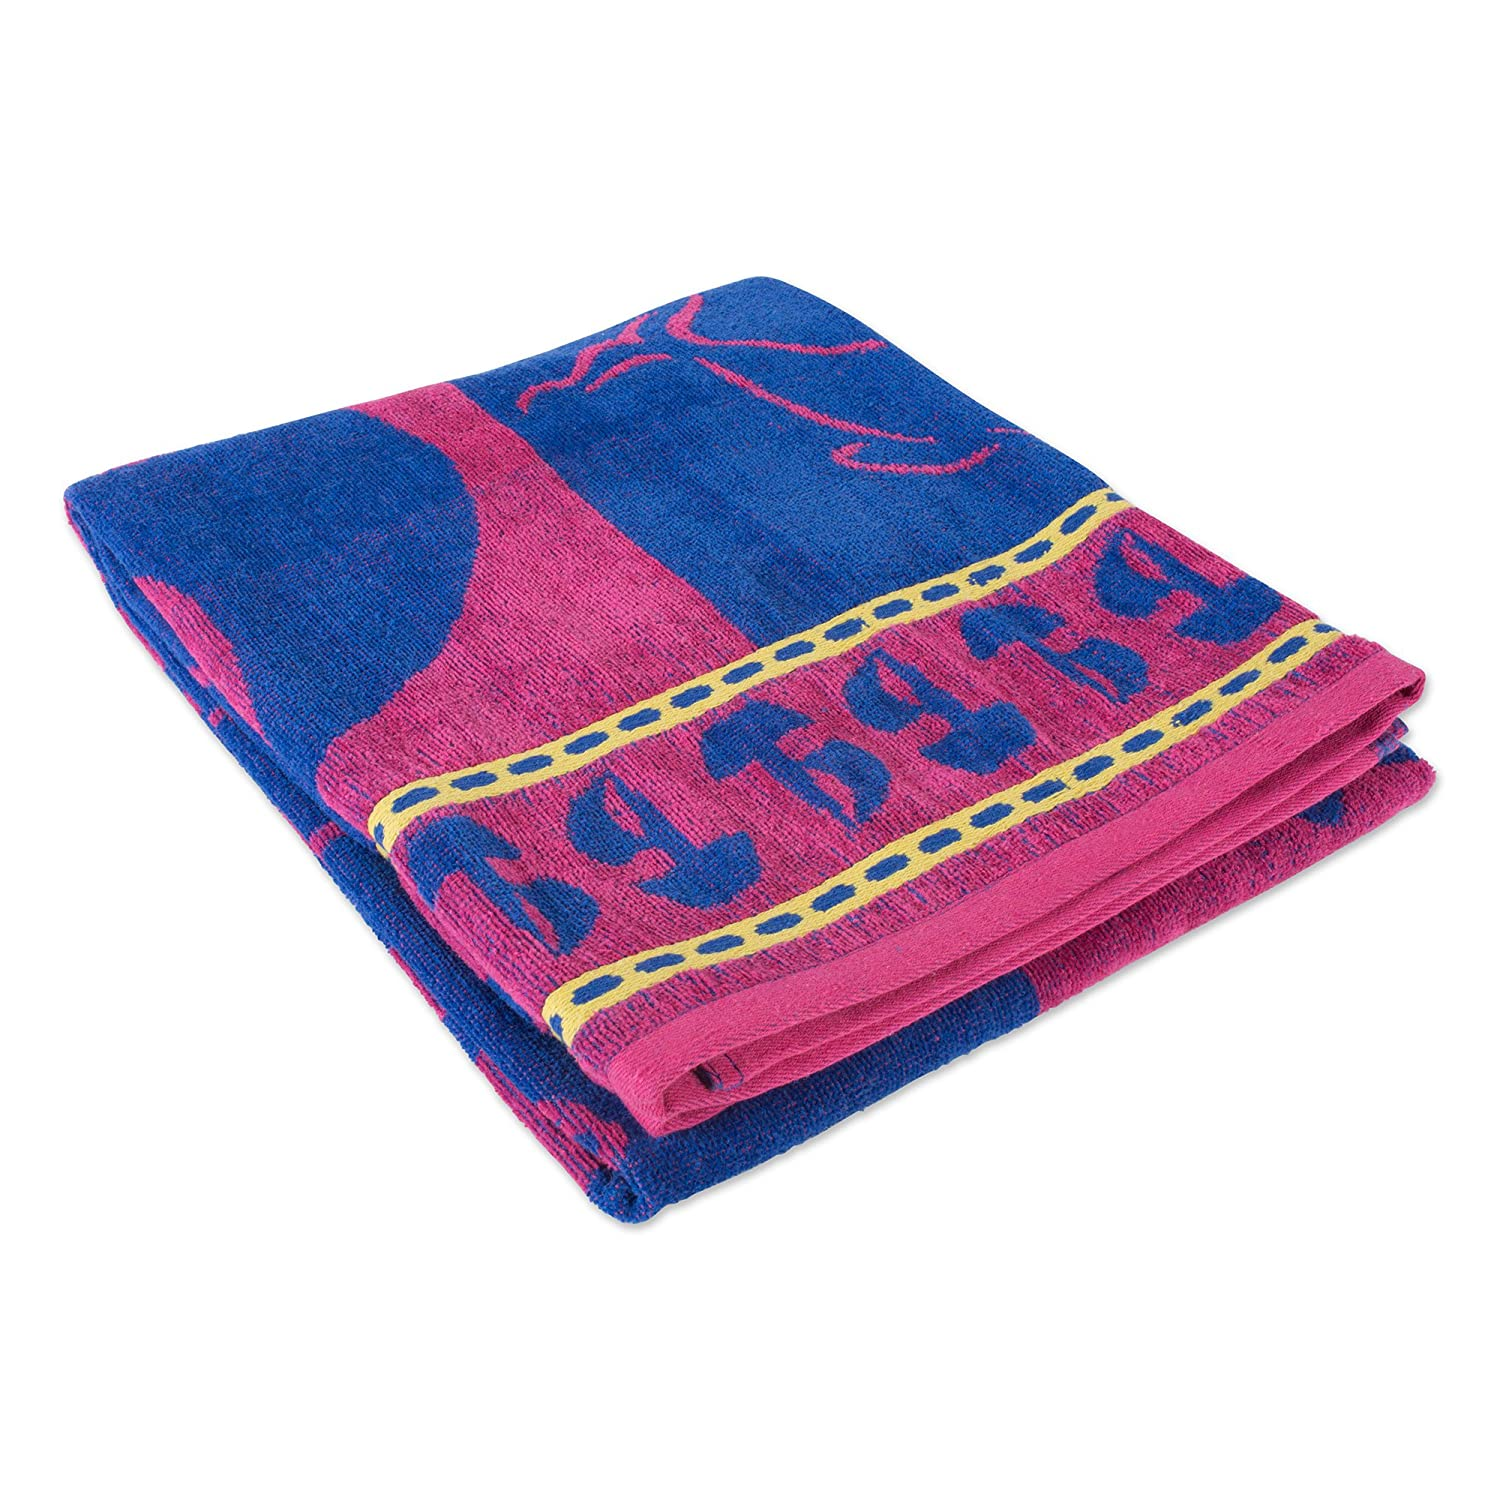 Beach and Spa-Blue//Pink Sea J/&M Home Fashions Fashion Colorful Beach Towel Soft Absorbent and Dry Fast for Swimming Pool 36x64